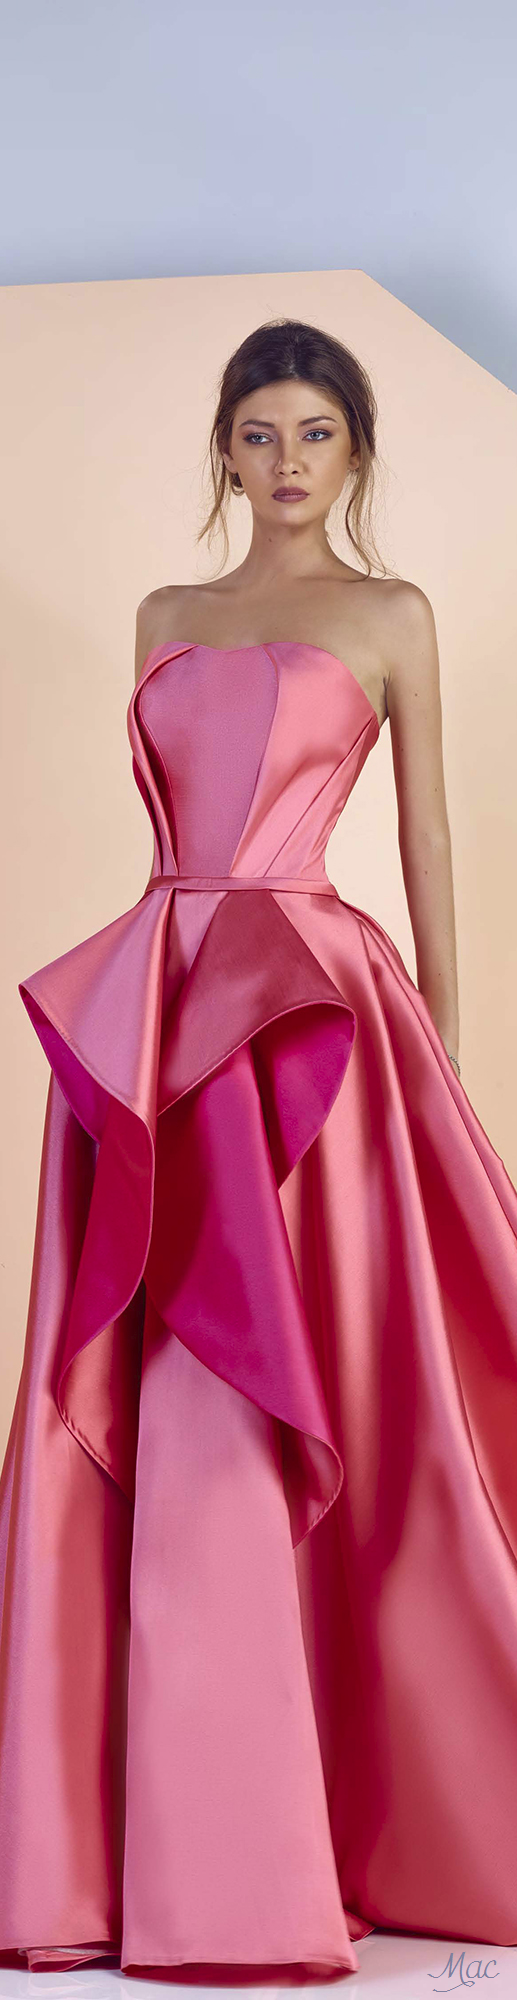 Spring 2017 Ready-to-Wear Divina by Edward Arsouni | Dresses ...